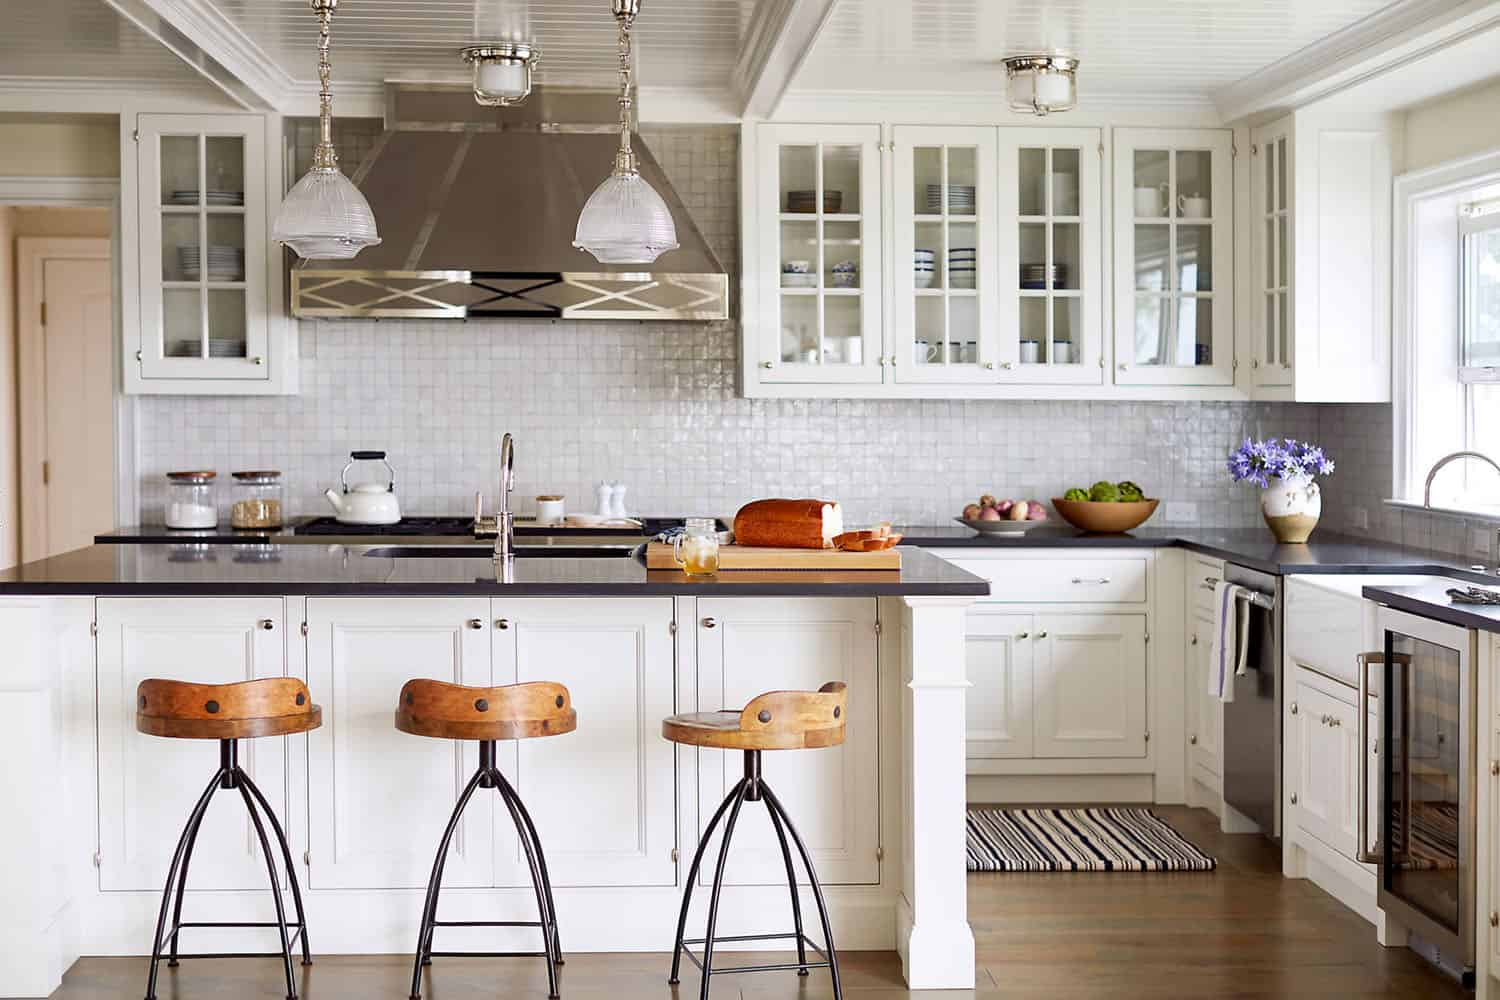 bright kitchen Free up Your Counter Space with These Kitchen Organizing Ideas